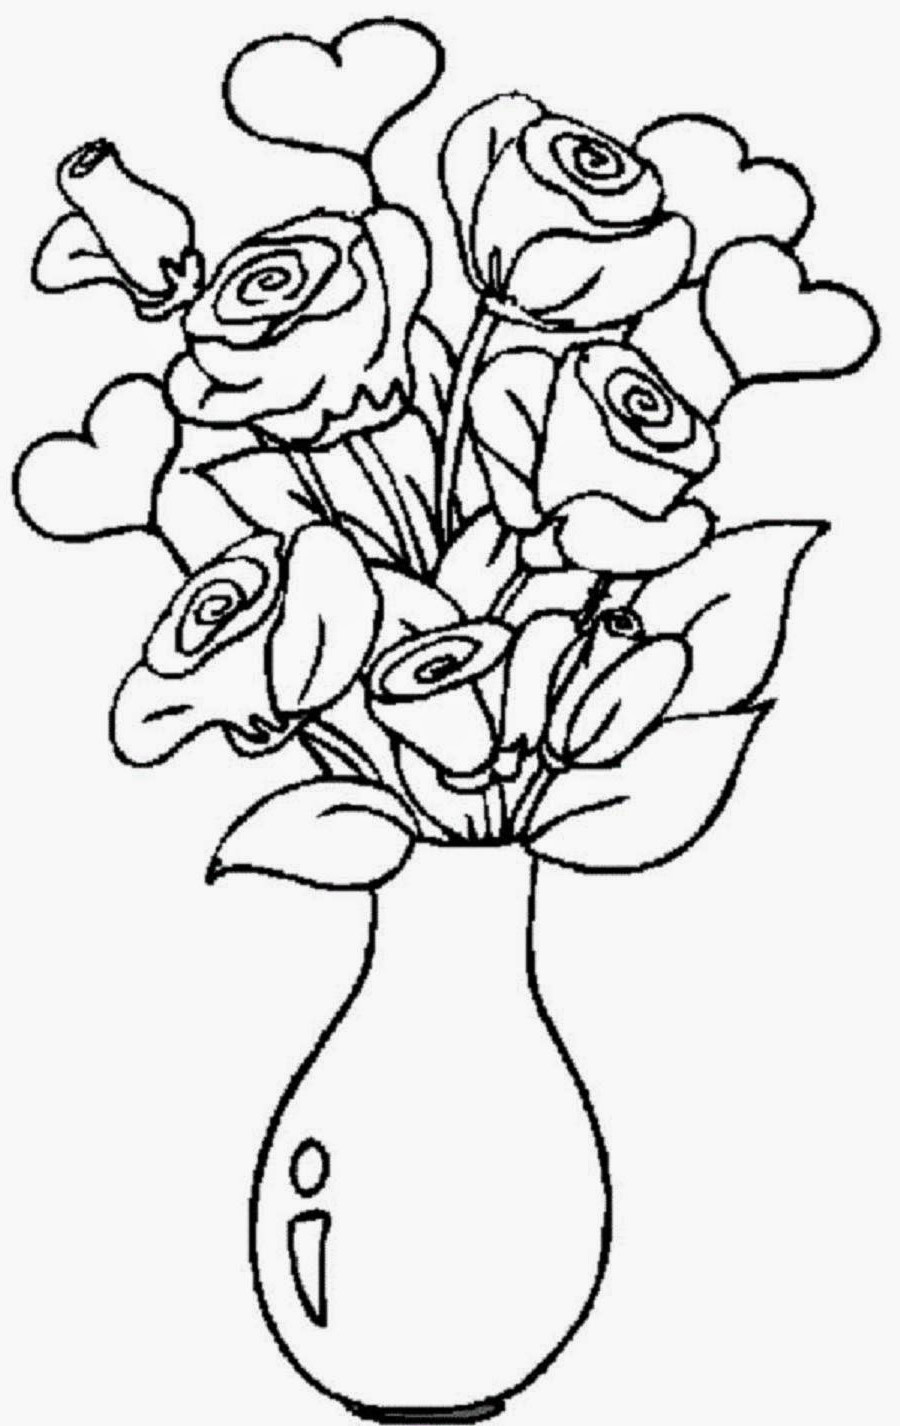 flower vase watercolor of best flower vase drawing and colouring drawing art and sketches inside best flower vase drawing and colouring colour drawing pictures of flowers at getdrawings free for